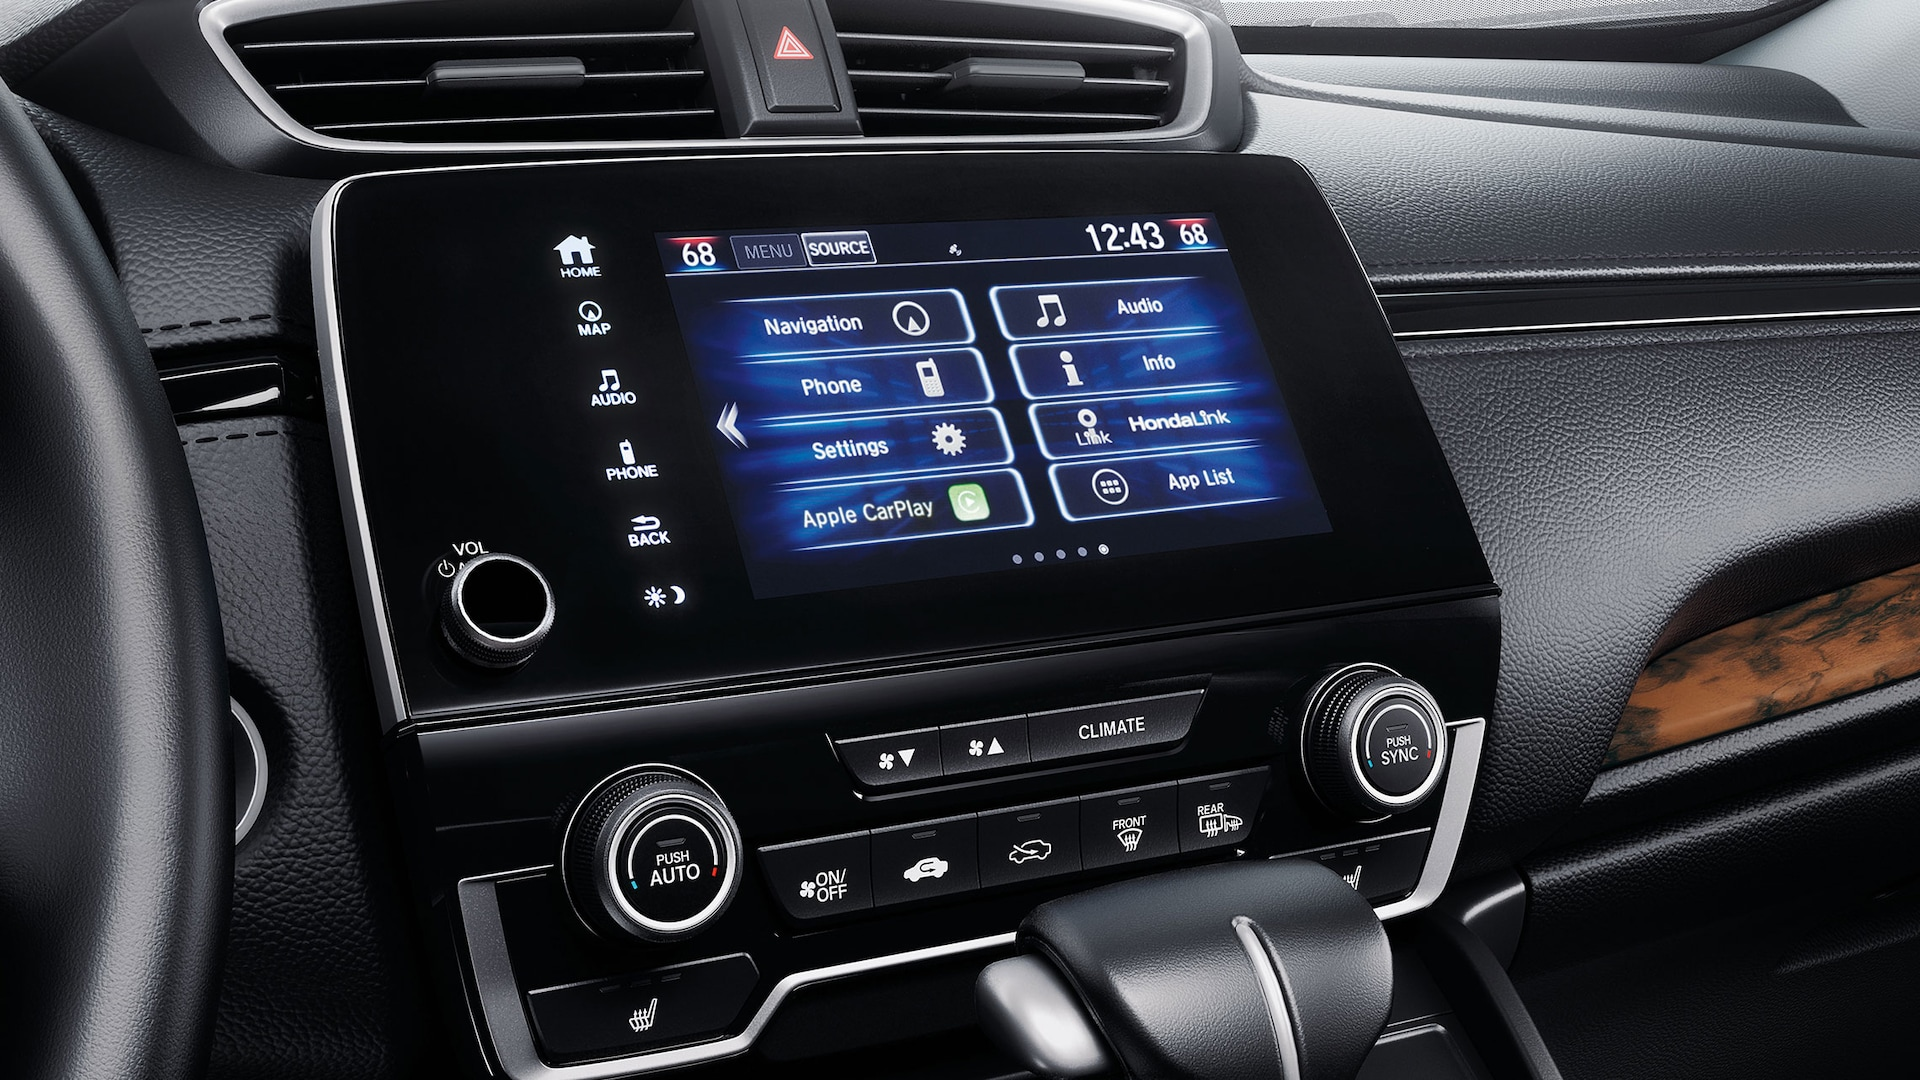 7-inch Display Audio touch-screen detail in the 2021 Honda CR-V Touring with Black Leather.